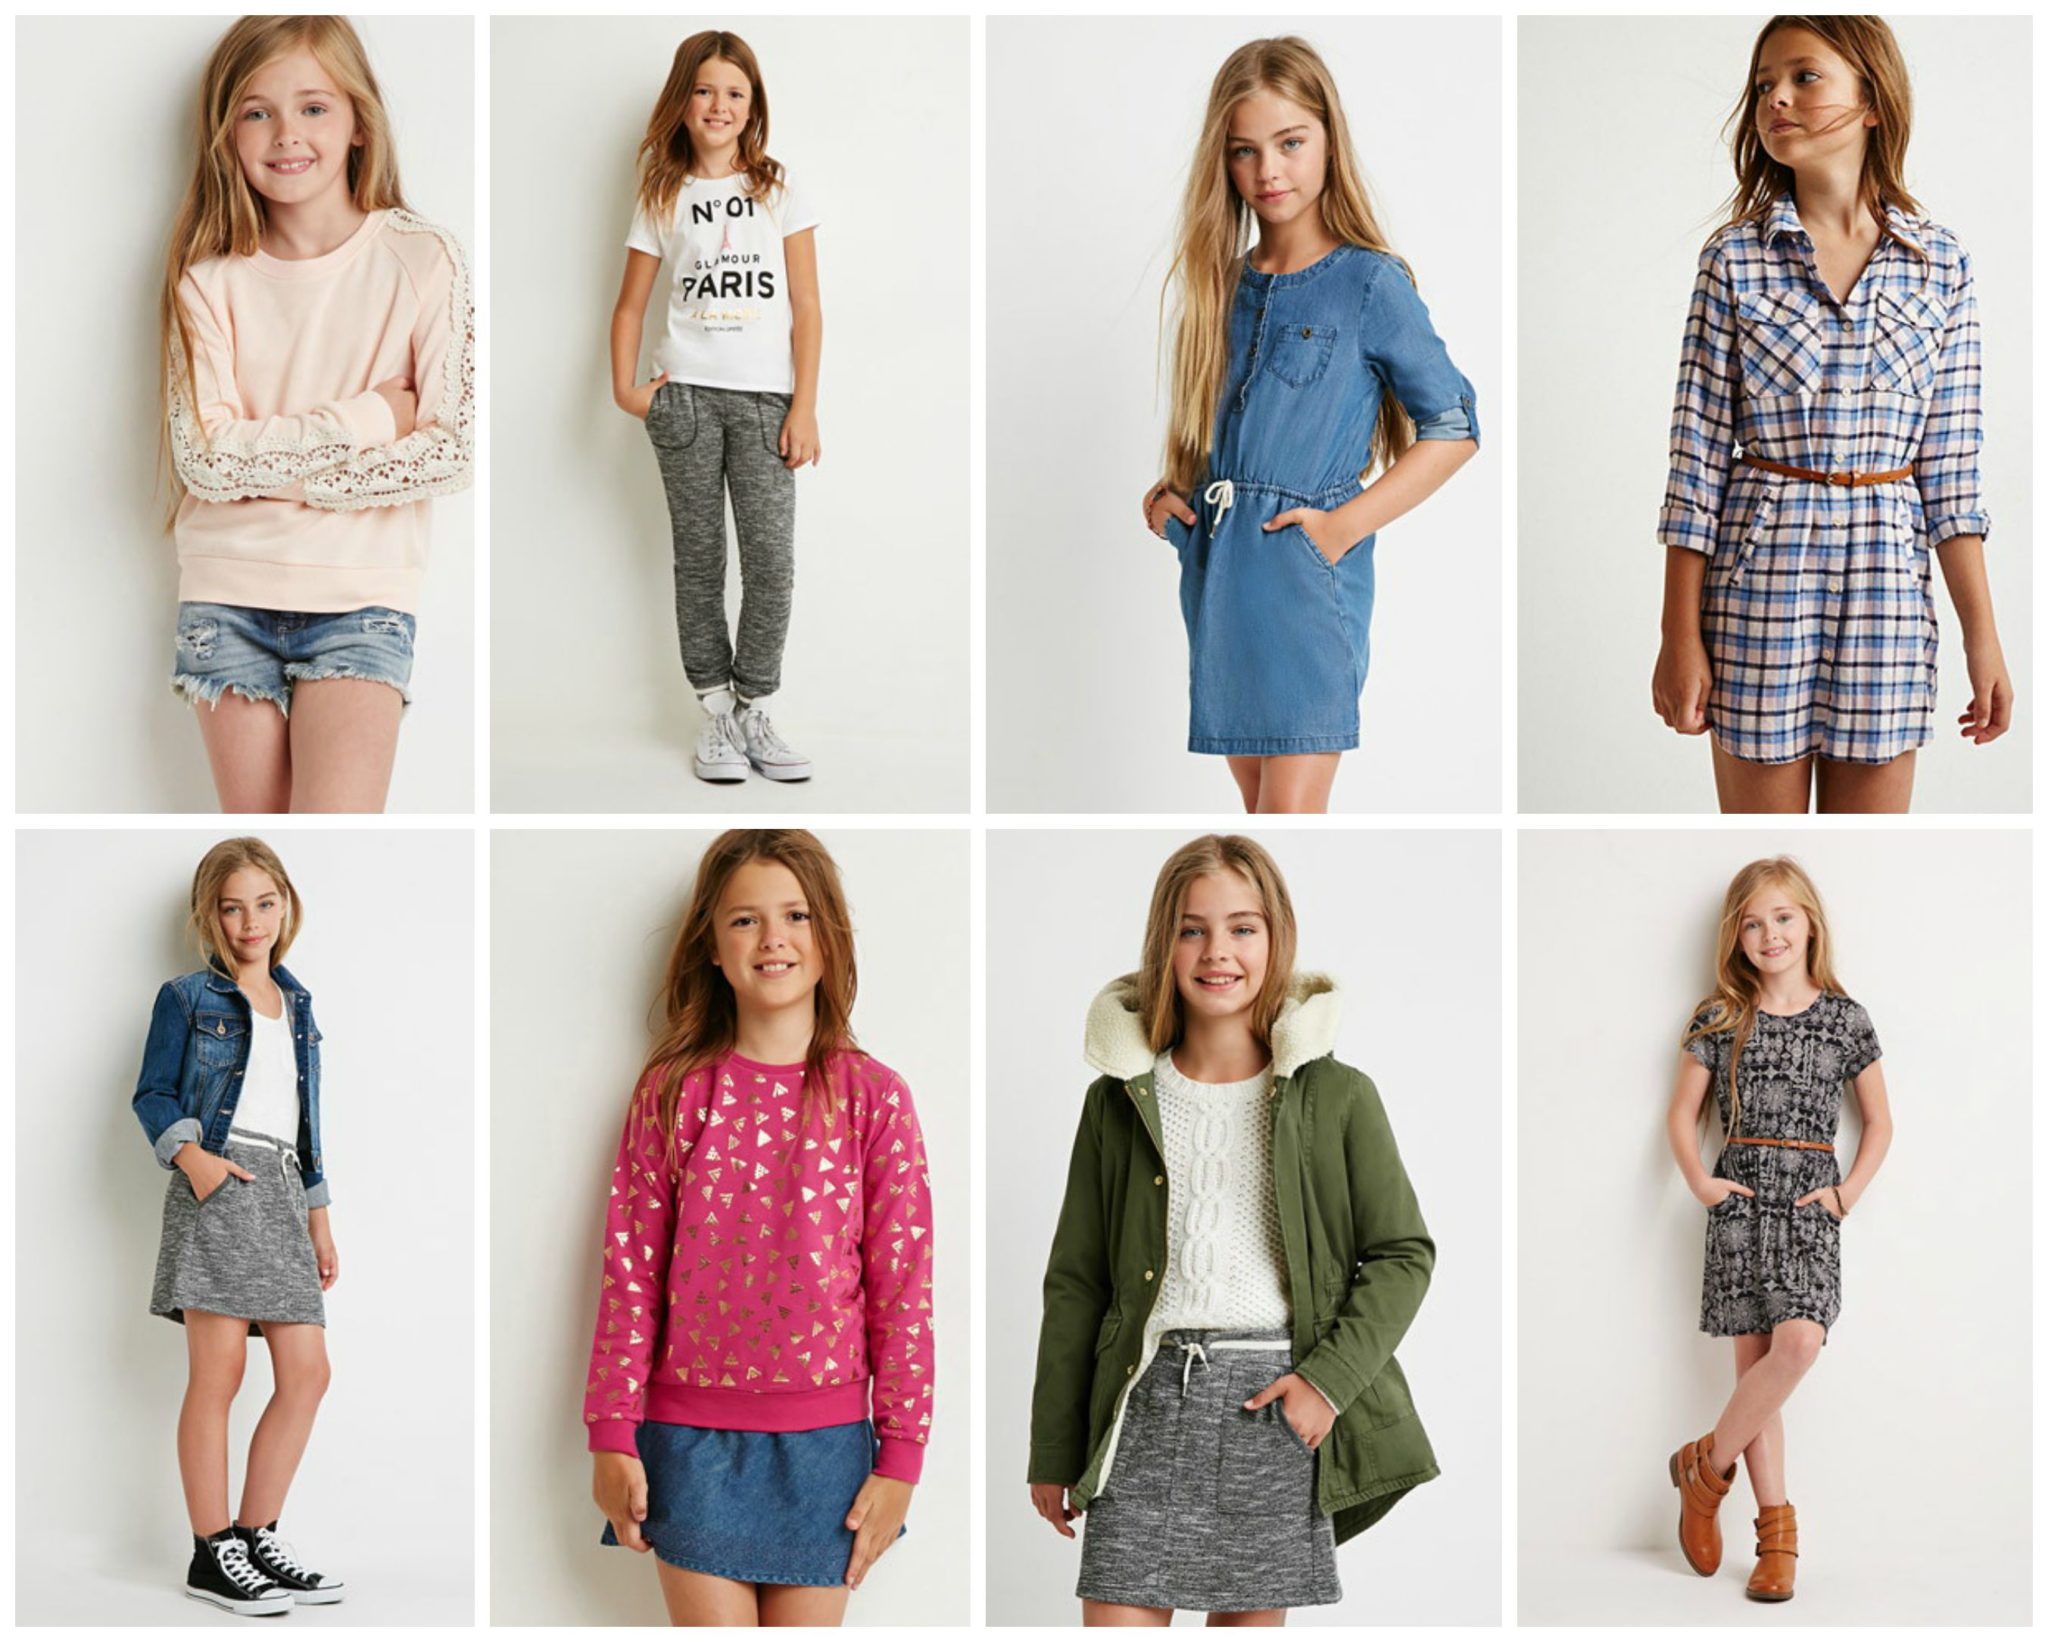 Foundatsimon Back To School Fashion Trends And Shopping Tips At The Mills At Jersey Gardens